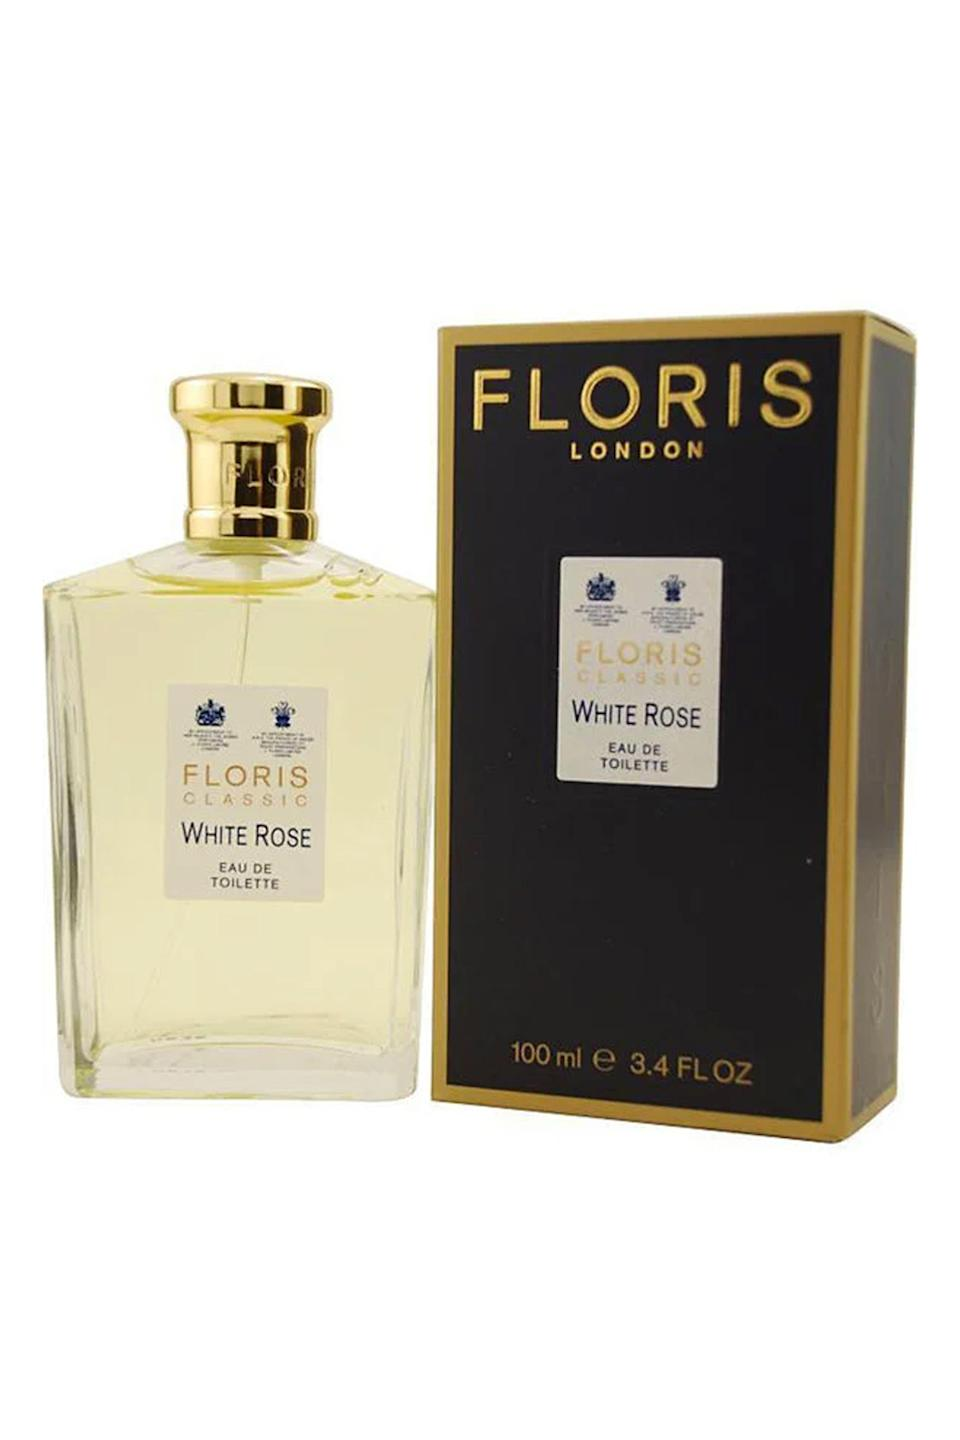 """<p><strong>Floris London</strong></p><p>overstock.com</p><p><strong>$89.99</strong></p><p><a href=""""https://go.redirectingat.com?id=74968X1596630&url=https%3A%2F%2Fwww.overstock.com%2FHealth-Beauty%2FFloris-White-Rose-Womens-3.4-ounce-Eau-de-Toilette-Spray%2F4354054%2Fproduct.html&sref=https%3A%2F%2Fwww.townandcountrymag.com%2Fstyle%2Fbeauty-products%2Fg28567503%2Fqueen-elizabeth-favorite-beauty-products%2F"""" rel=""""nofollow noopener"""" target=""""_blank"""" data-ylk=""""slk:Shop Now"""" class=""""link rapid-noclick-resp"""">Shop Now</a></p><p>According to <a href=""""https://www.florislondon.com/en_eur/history-of-floris"""" rel=""""nofollow noopener"""" target=""""_blank"""" data-ylk=""""slk:Floris"""" class=""""link rapid-noclick-resp"""">Floris</a>, the likes of <em>Frankenstein</em> author Mary Shelley, King George IV, and Florence Nightingale were all devotees—meaning that Queen Elizabeth is in good company. Floris has a royal warrant from the Queen, as her """"perfumers,"""" and although she's never mentioned the scent she's keen on, we're betting on the floral White Rose.</p>"""